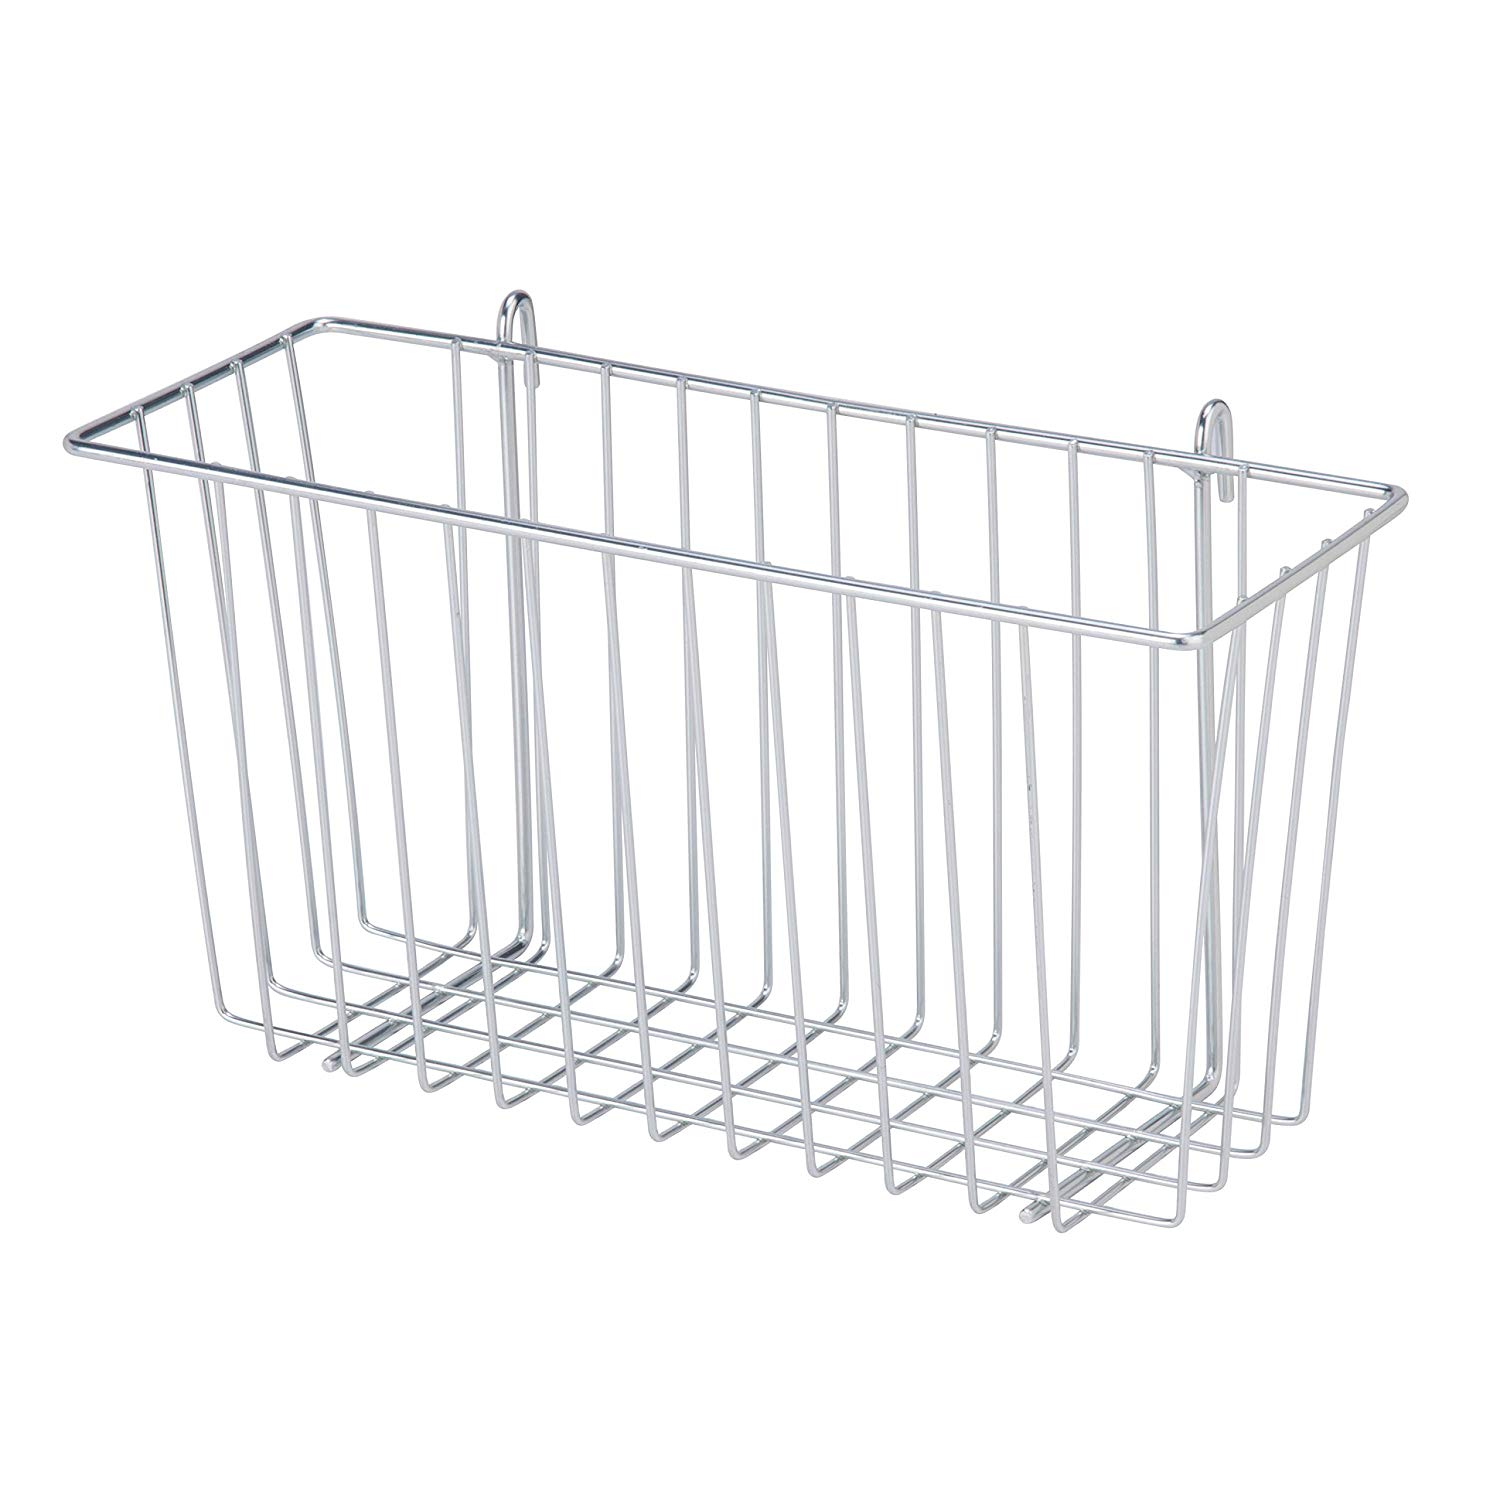 Chrome IP Steel Wire Baskets